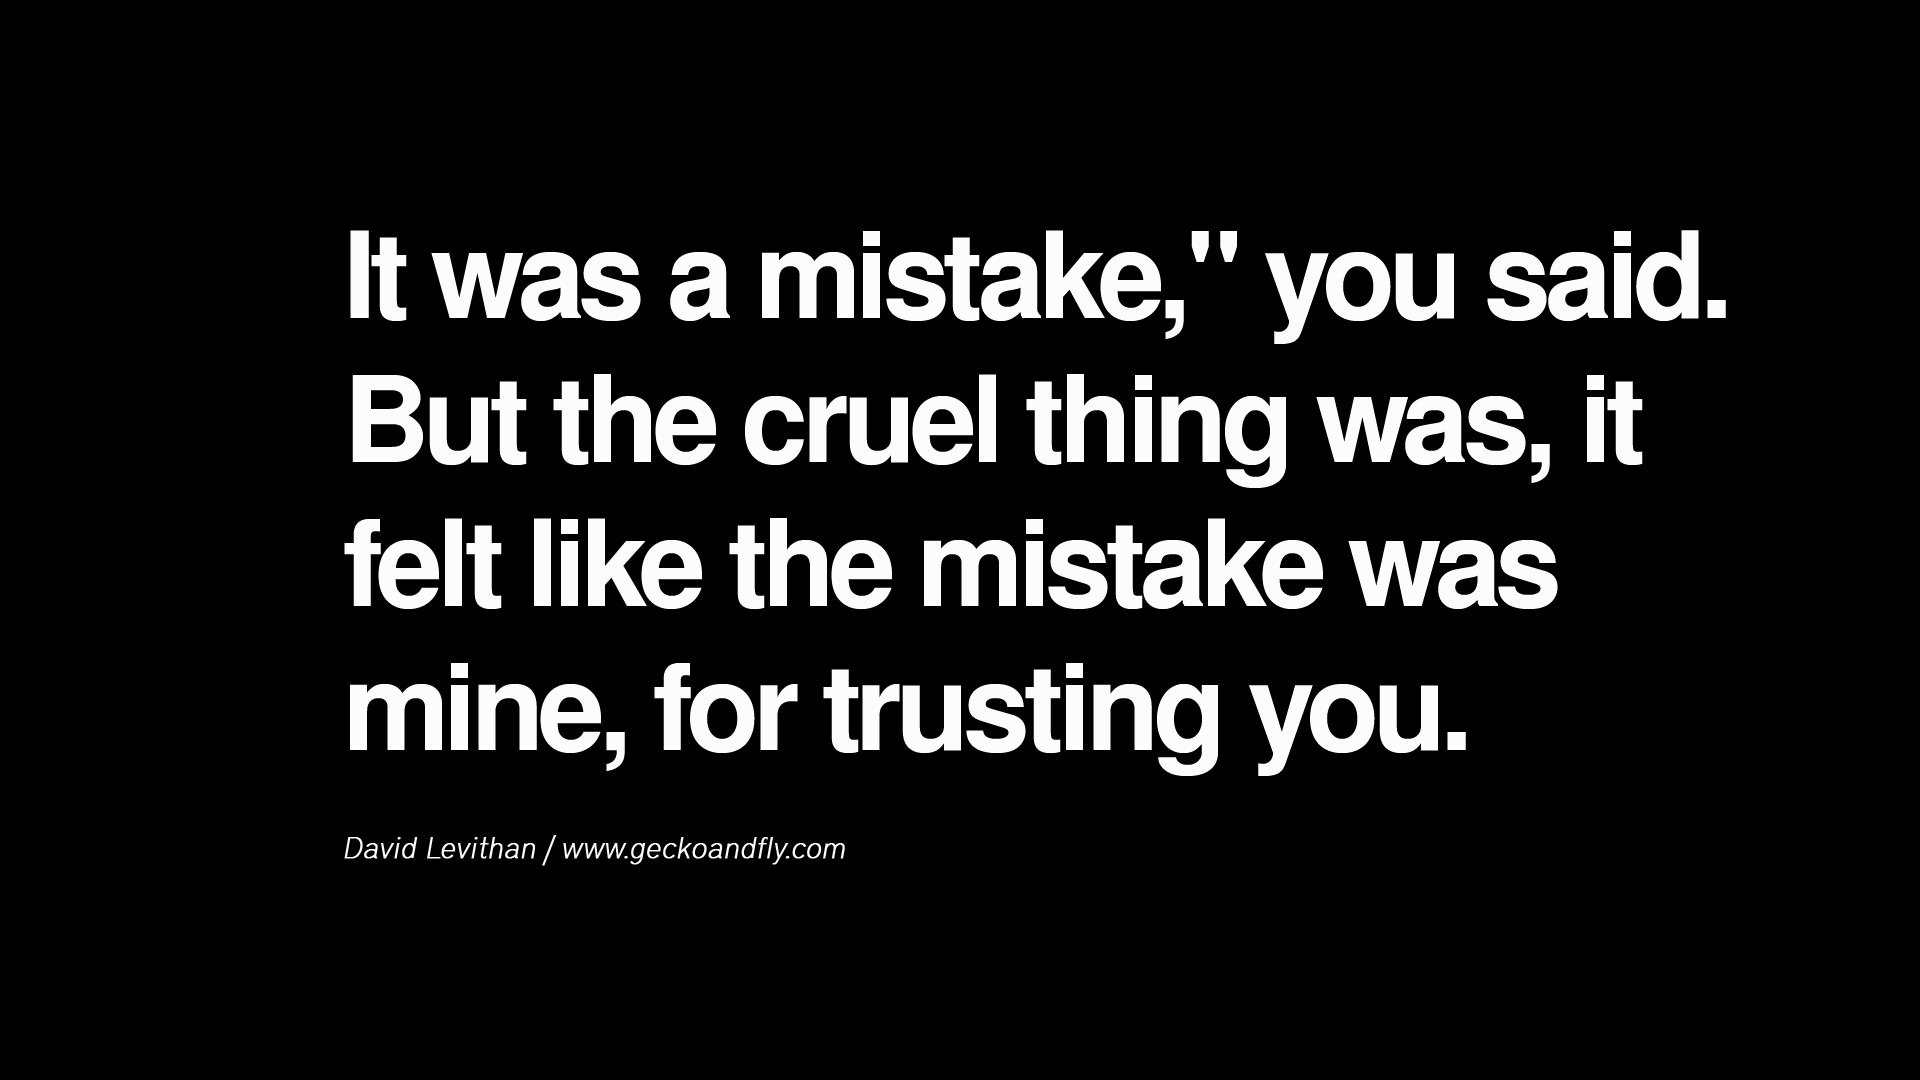 Funny Quotes About Betrayal: Betrayed Love Quotes And Sayings. QuotesGram